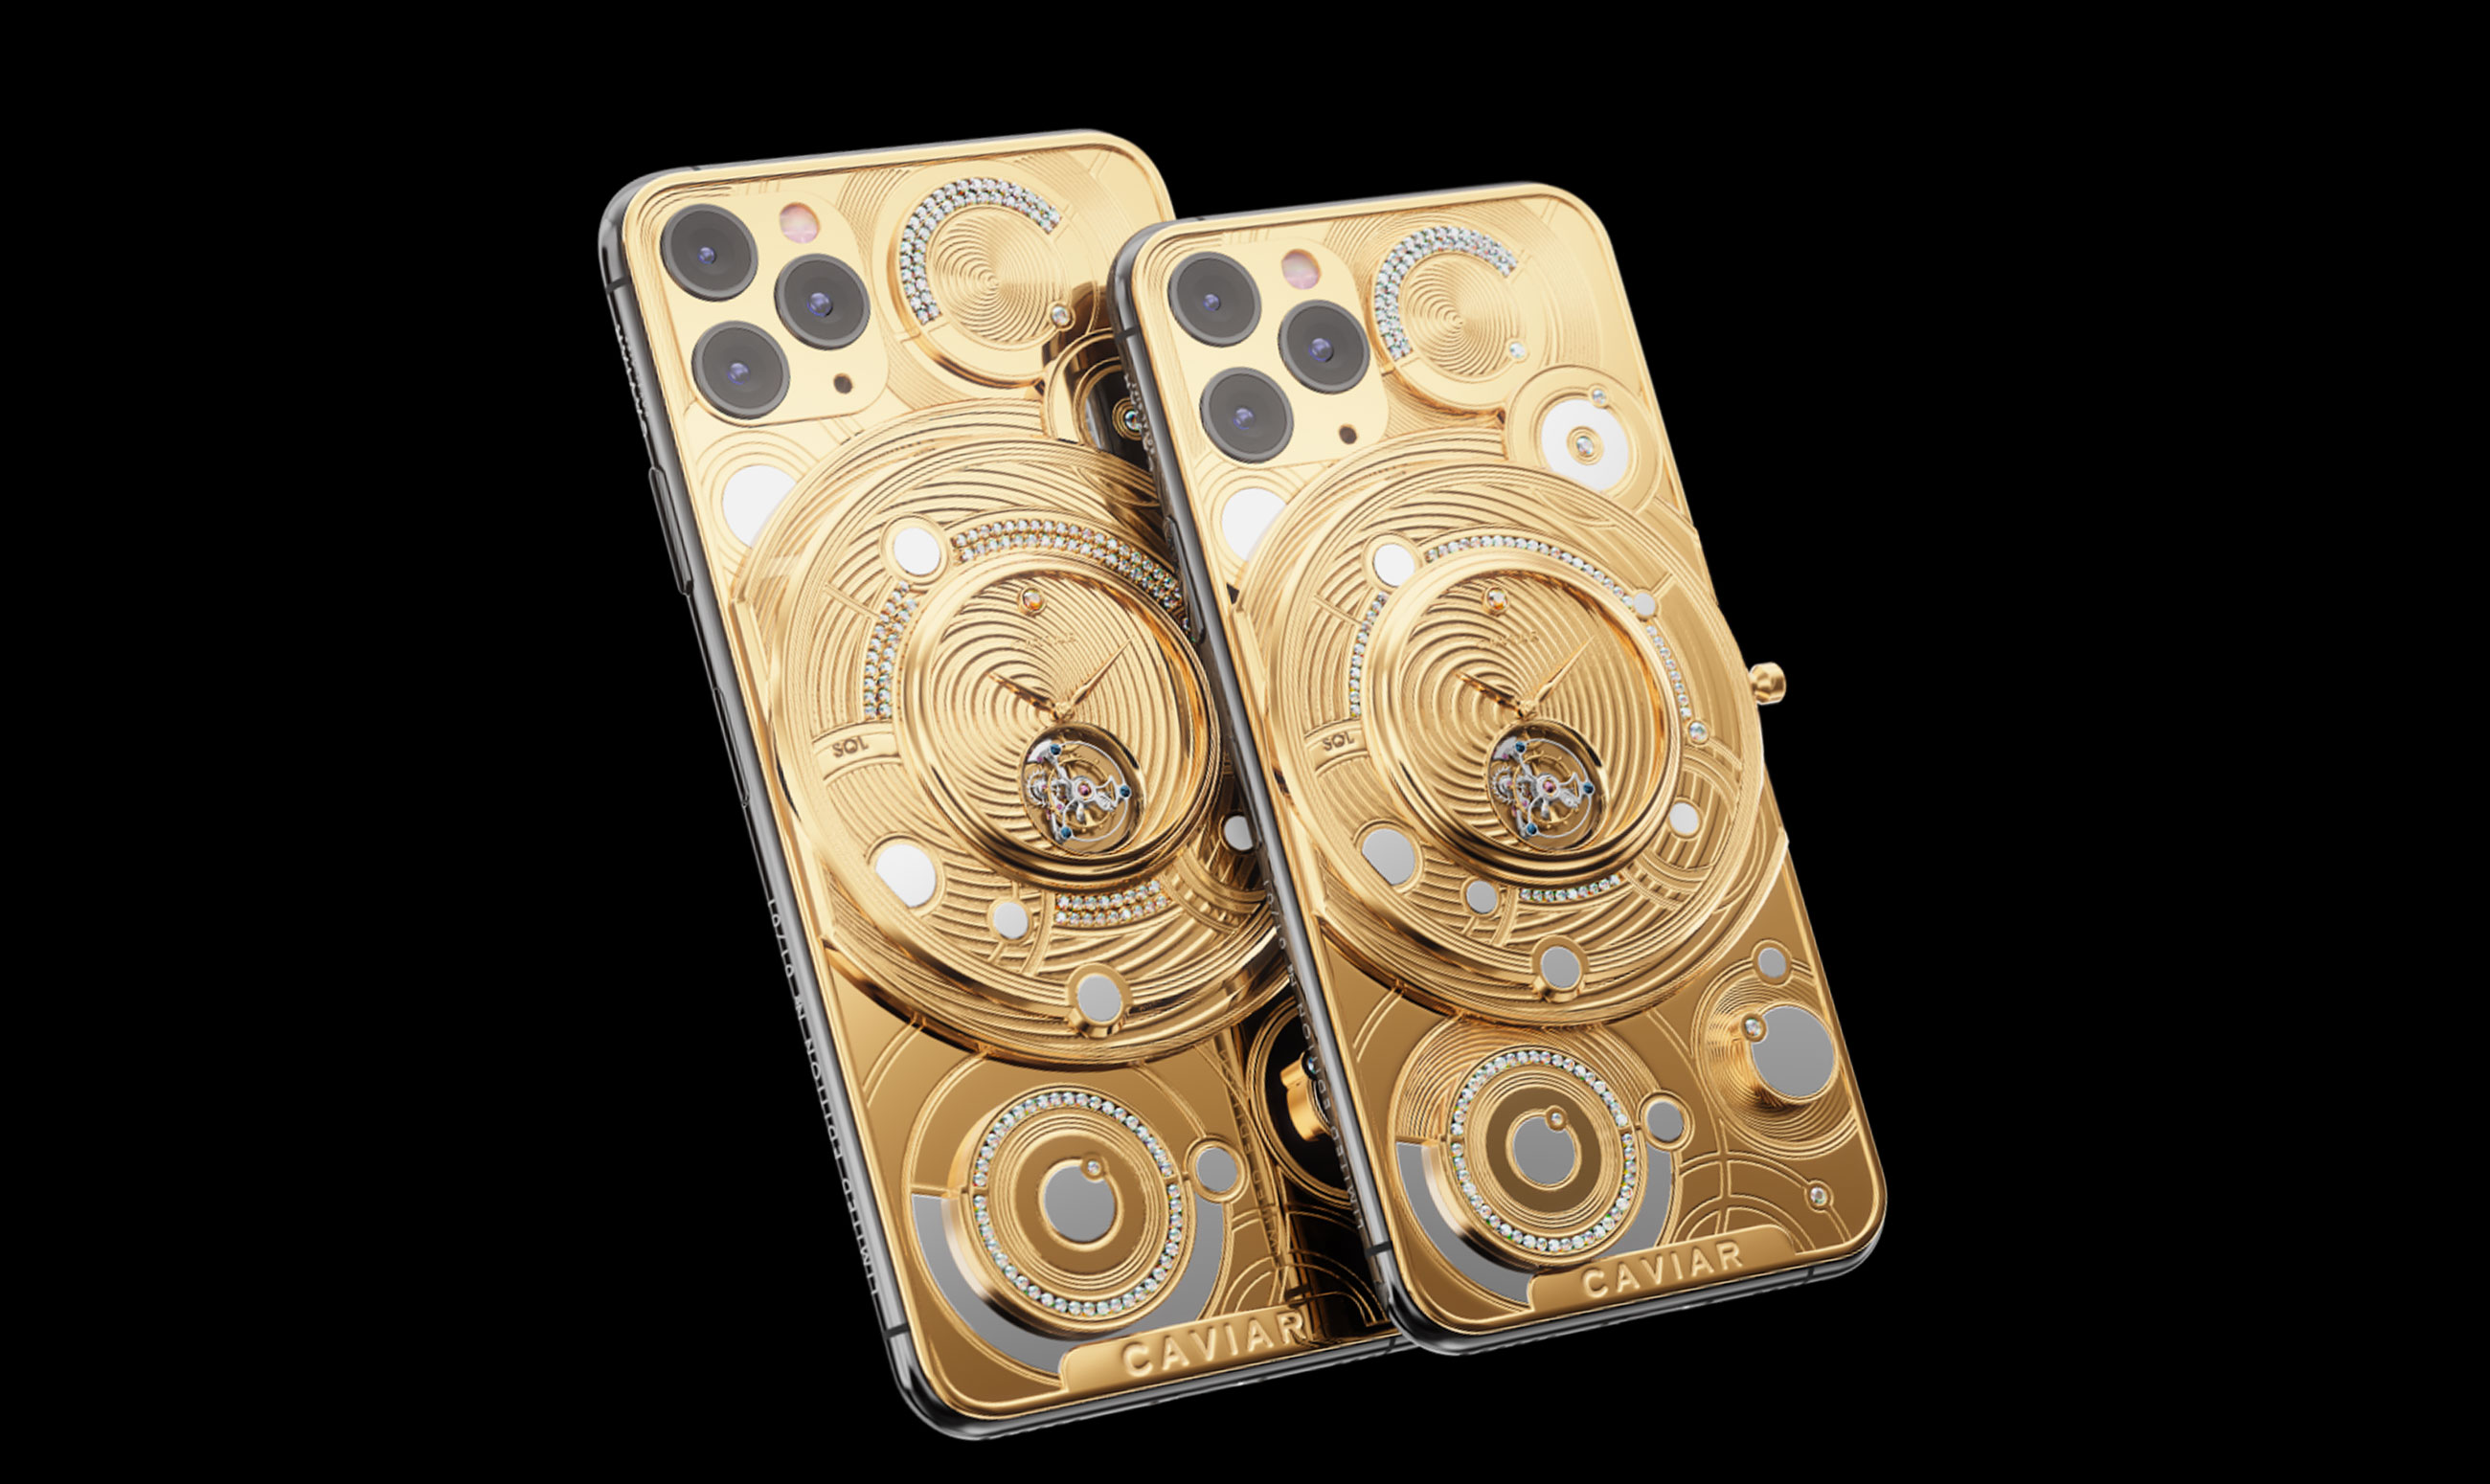 Caviar releases $70k iPhone 11 Pro featuring diamonds and 500 grams of gold